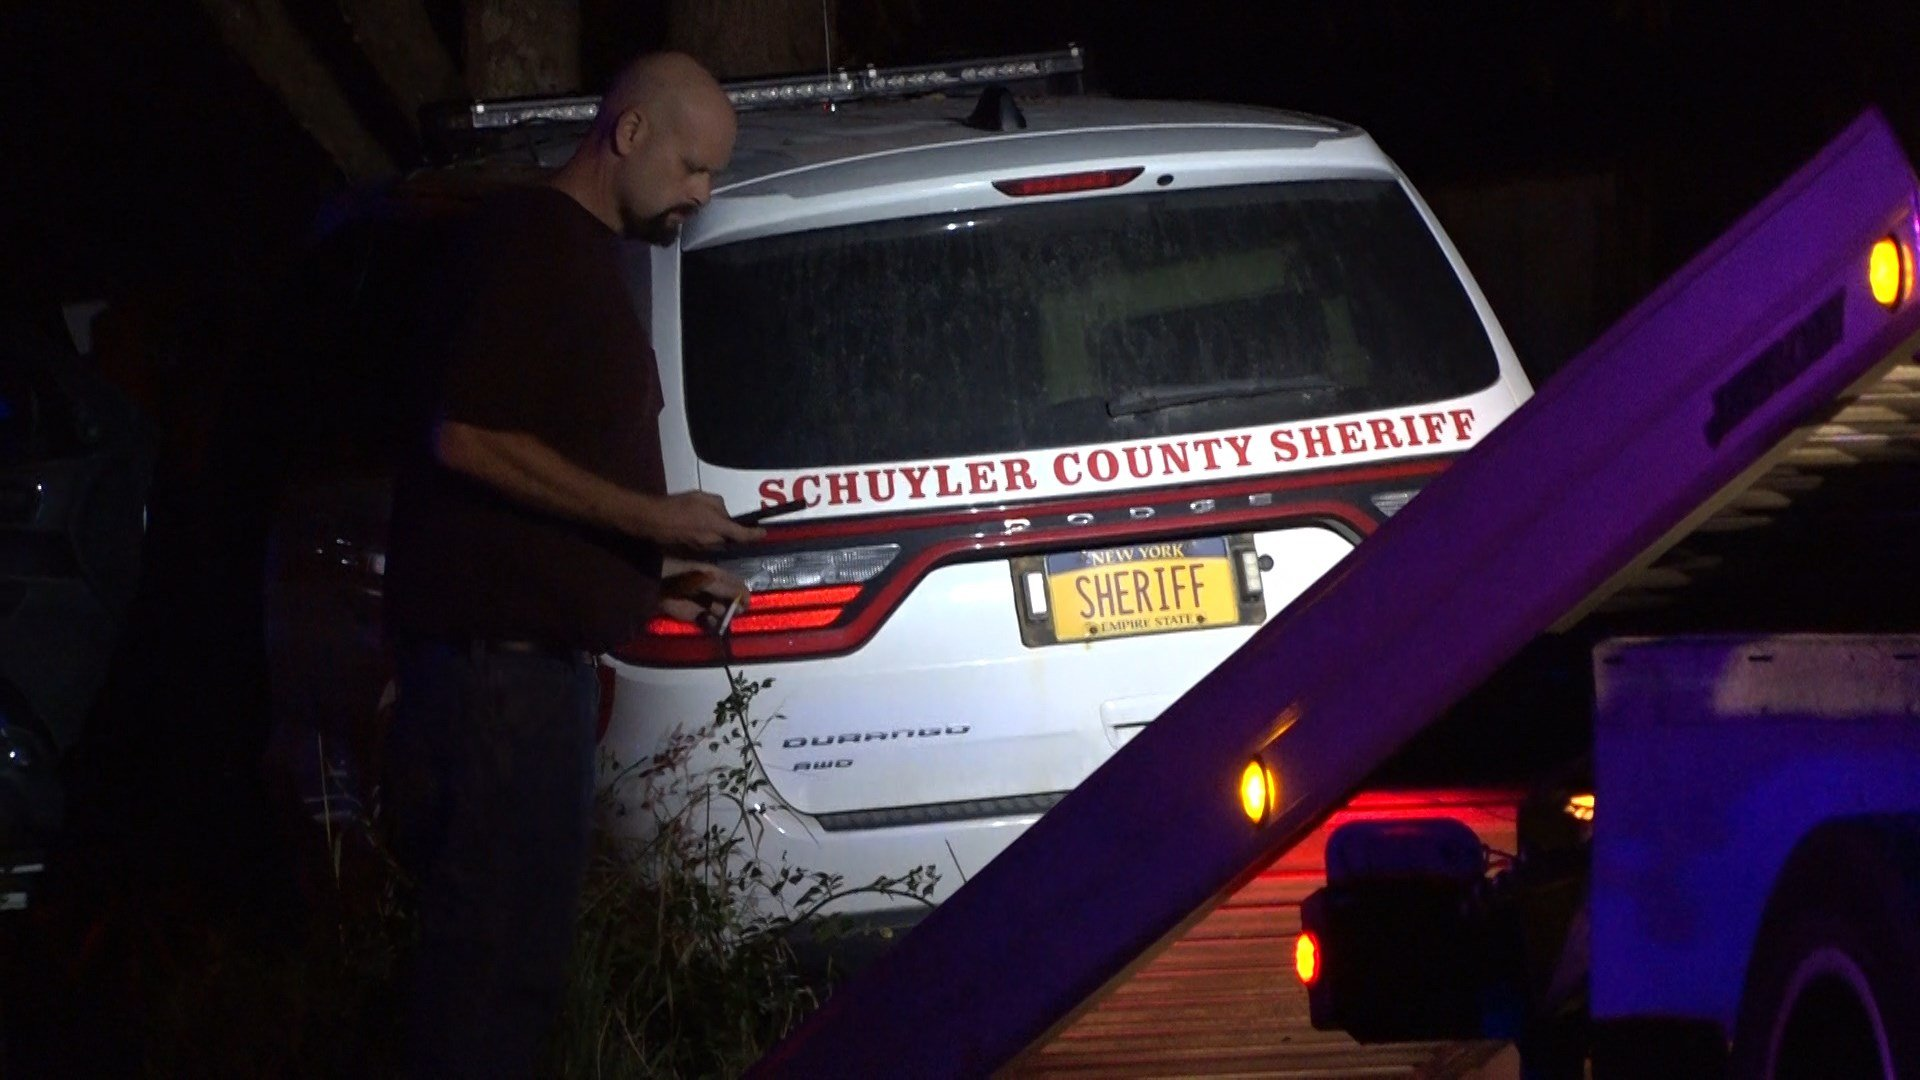 Schuyler Co. Sheriff's Office patrol car crashes during police chase